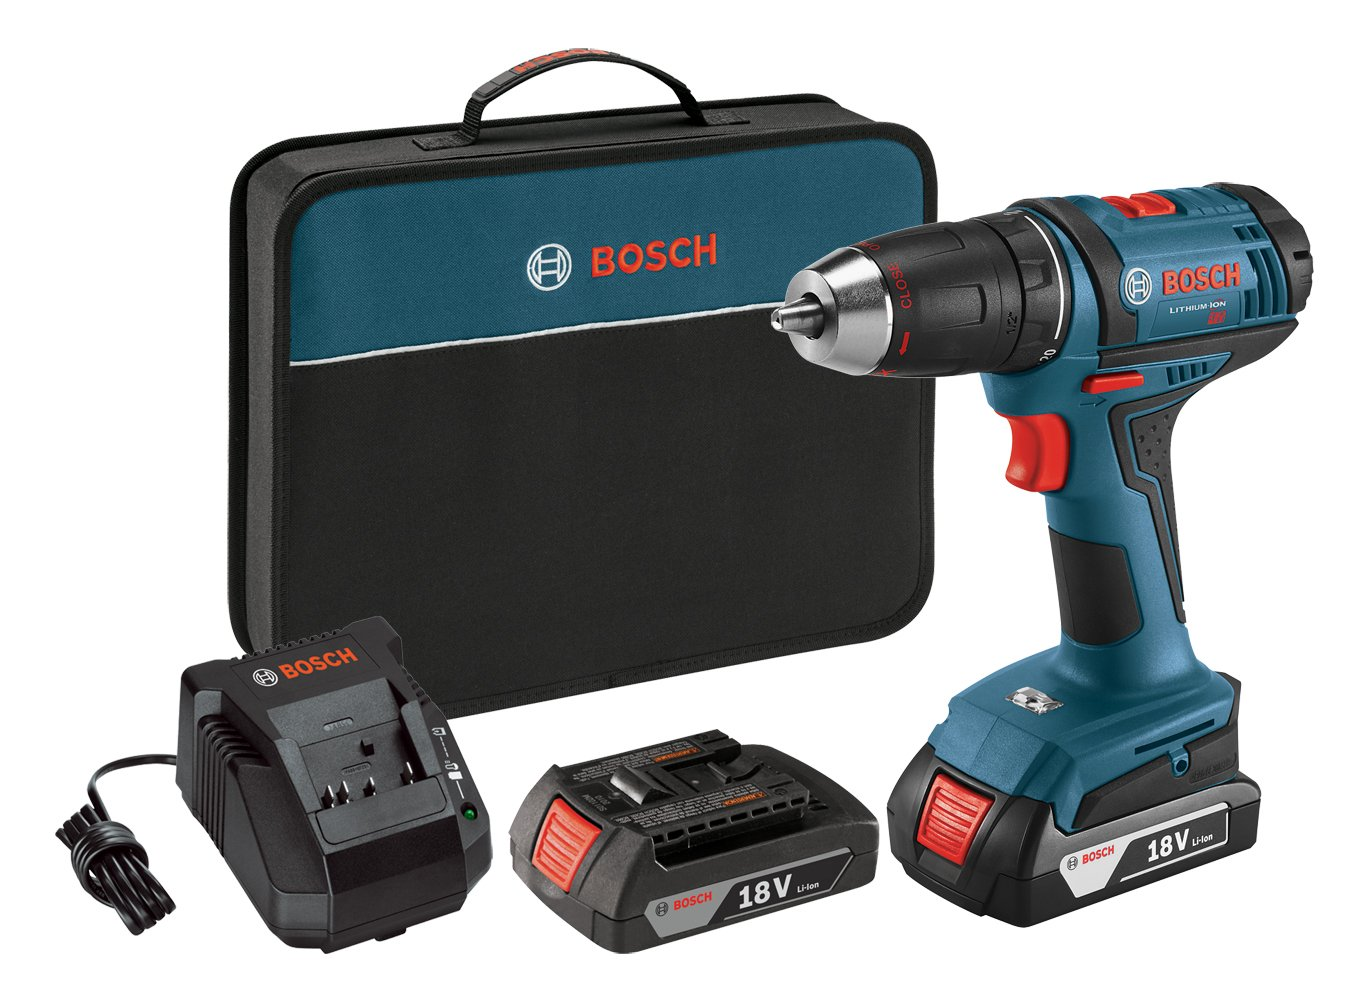 Bosch 18-Volt Compact Tough Drill/Driver Kit DD181-02 with 2 Lithium Ion Batteries, 18V Charger, and Soft Carry Contractor Bag